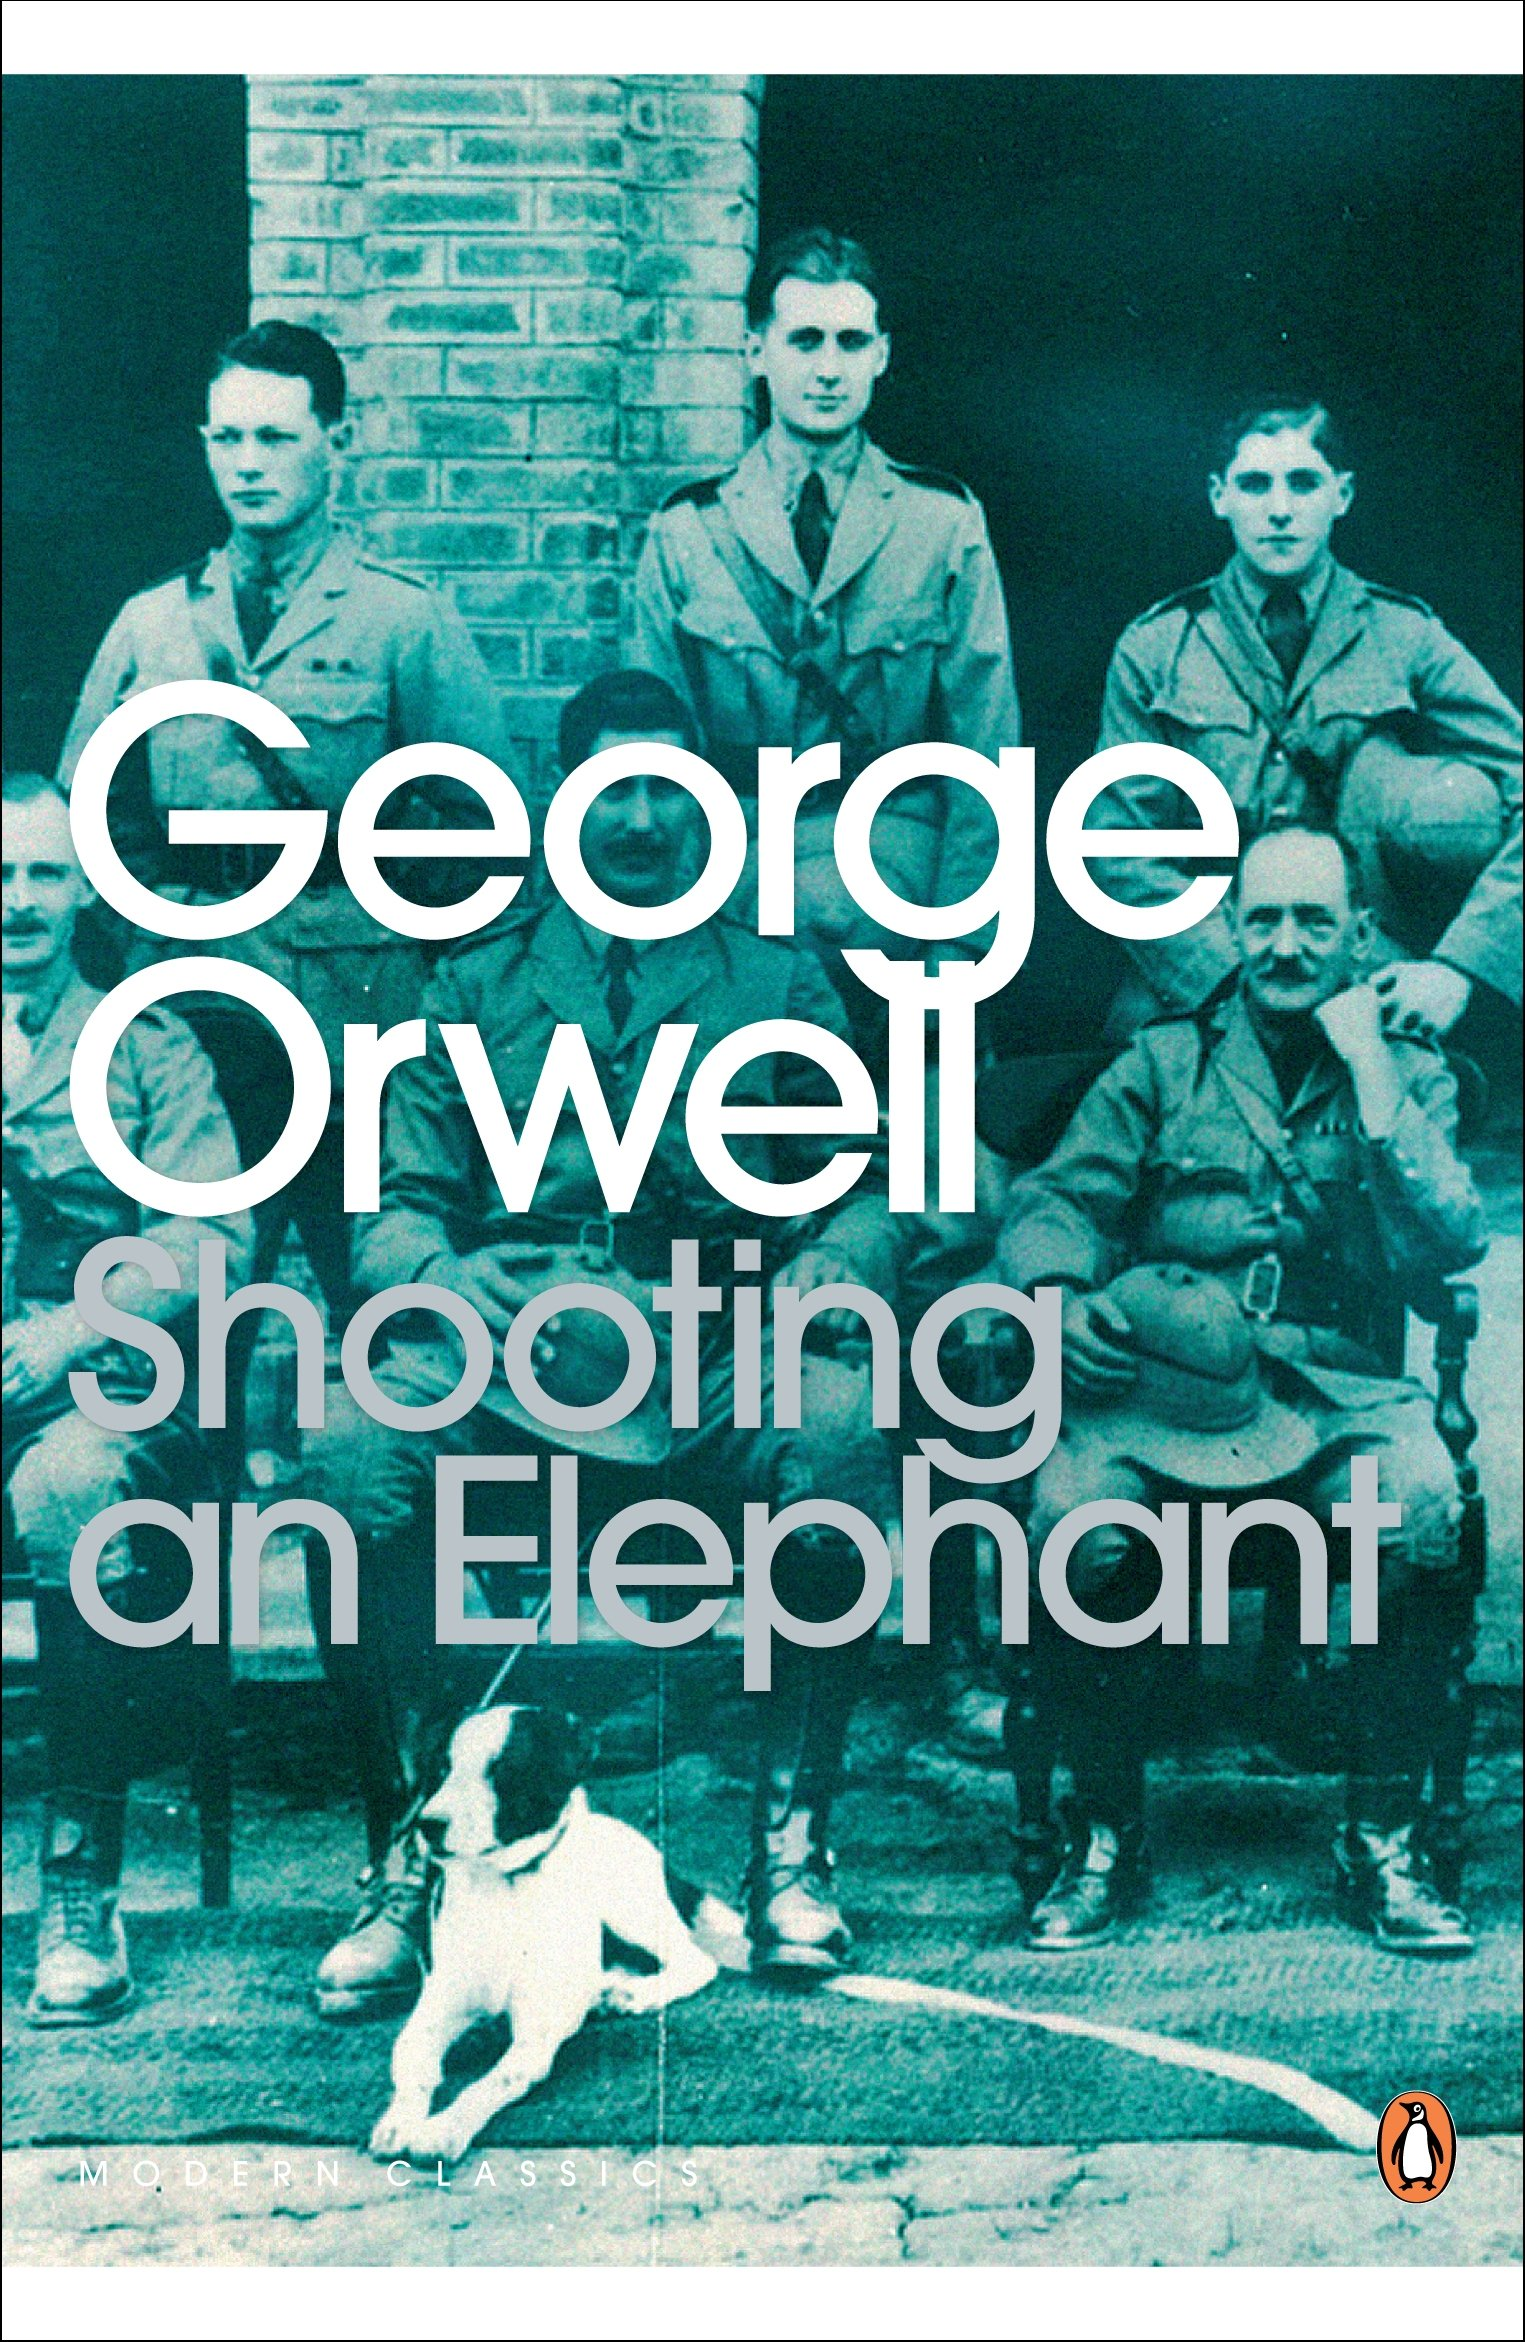 essays george orwell shooting an elephant and other essays penguin  shooting an elephant and other essays penguin modern classics shooting an elephant and other essays penguin